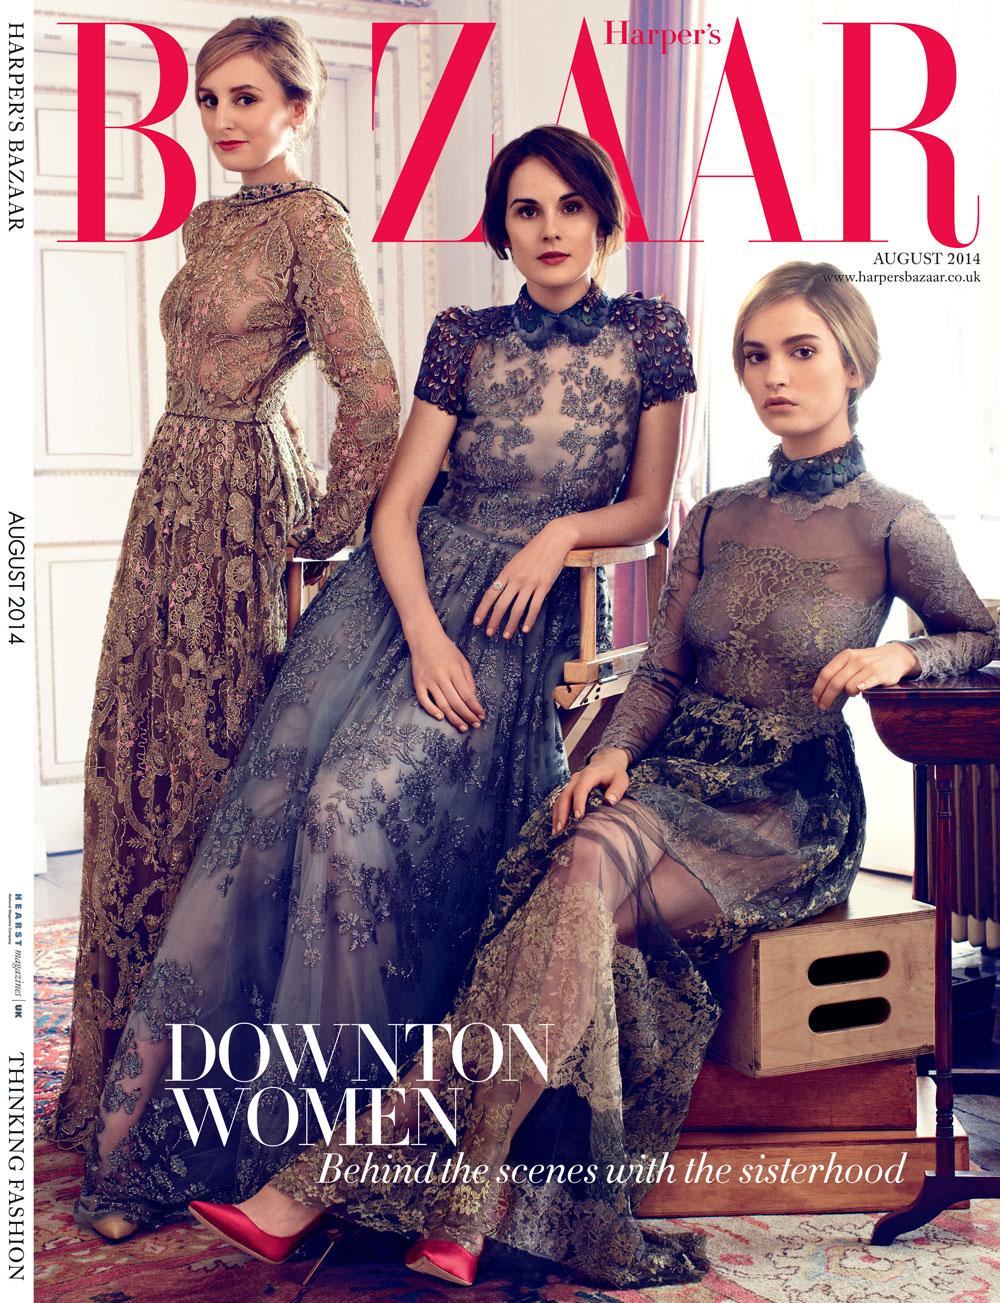 Harper-Bazaar-UK-August-2014-Downton-Abbey-Magazine-Editorials-Laura-Carmichael-Michelle-Dockery-Lily-James-Tom-Lorenzo-Site-TLO (1)